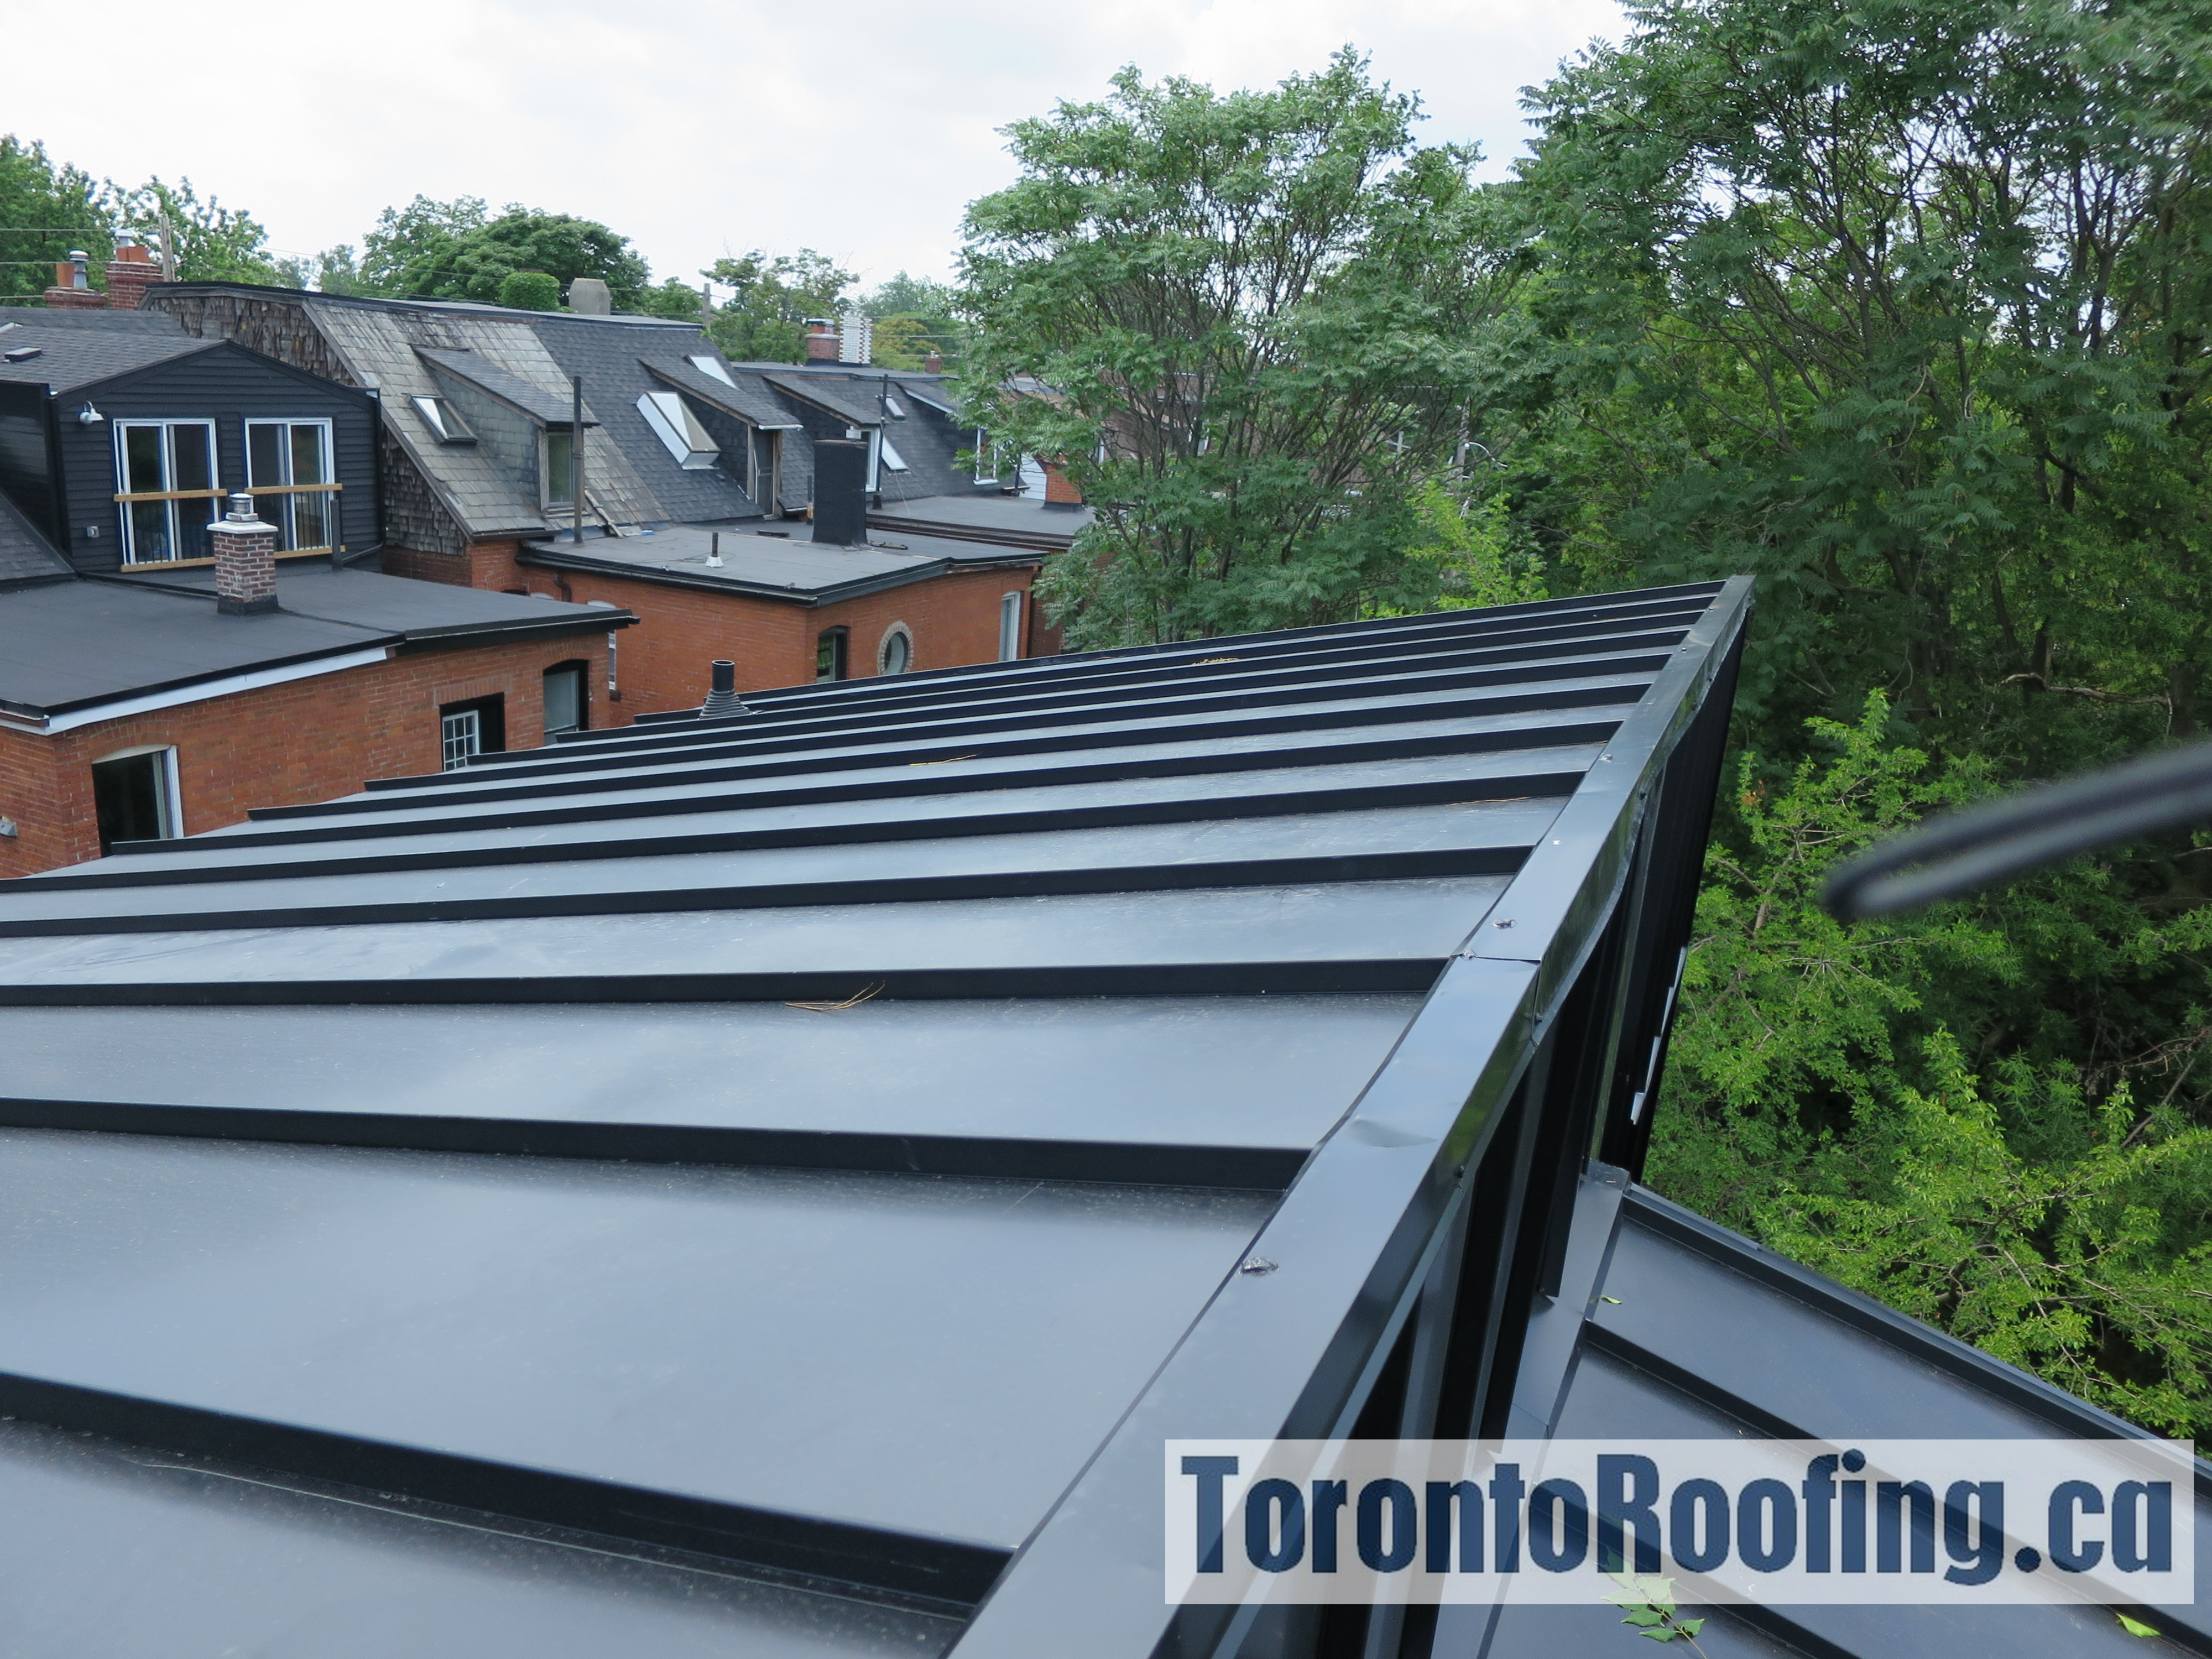 toronto-roofing-standing-seam-metal-roof-roofing-toronto-metal-roofing-roofing-contractor-3-copy